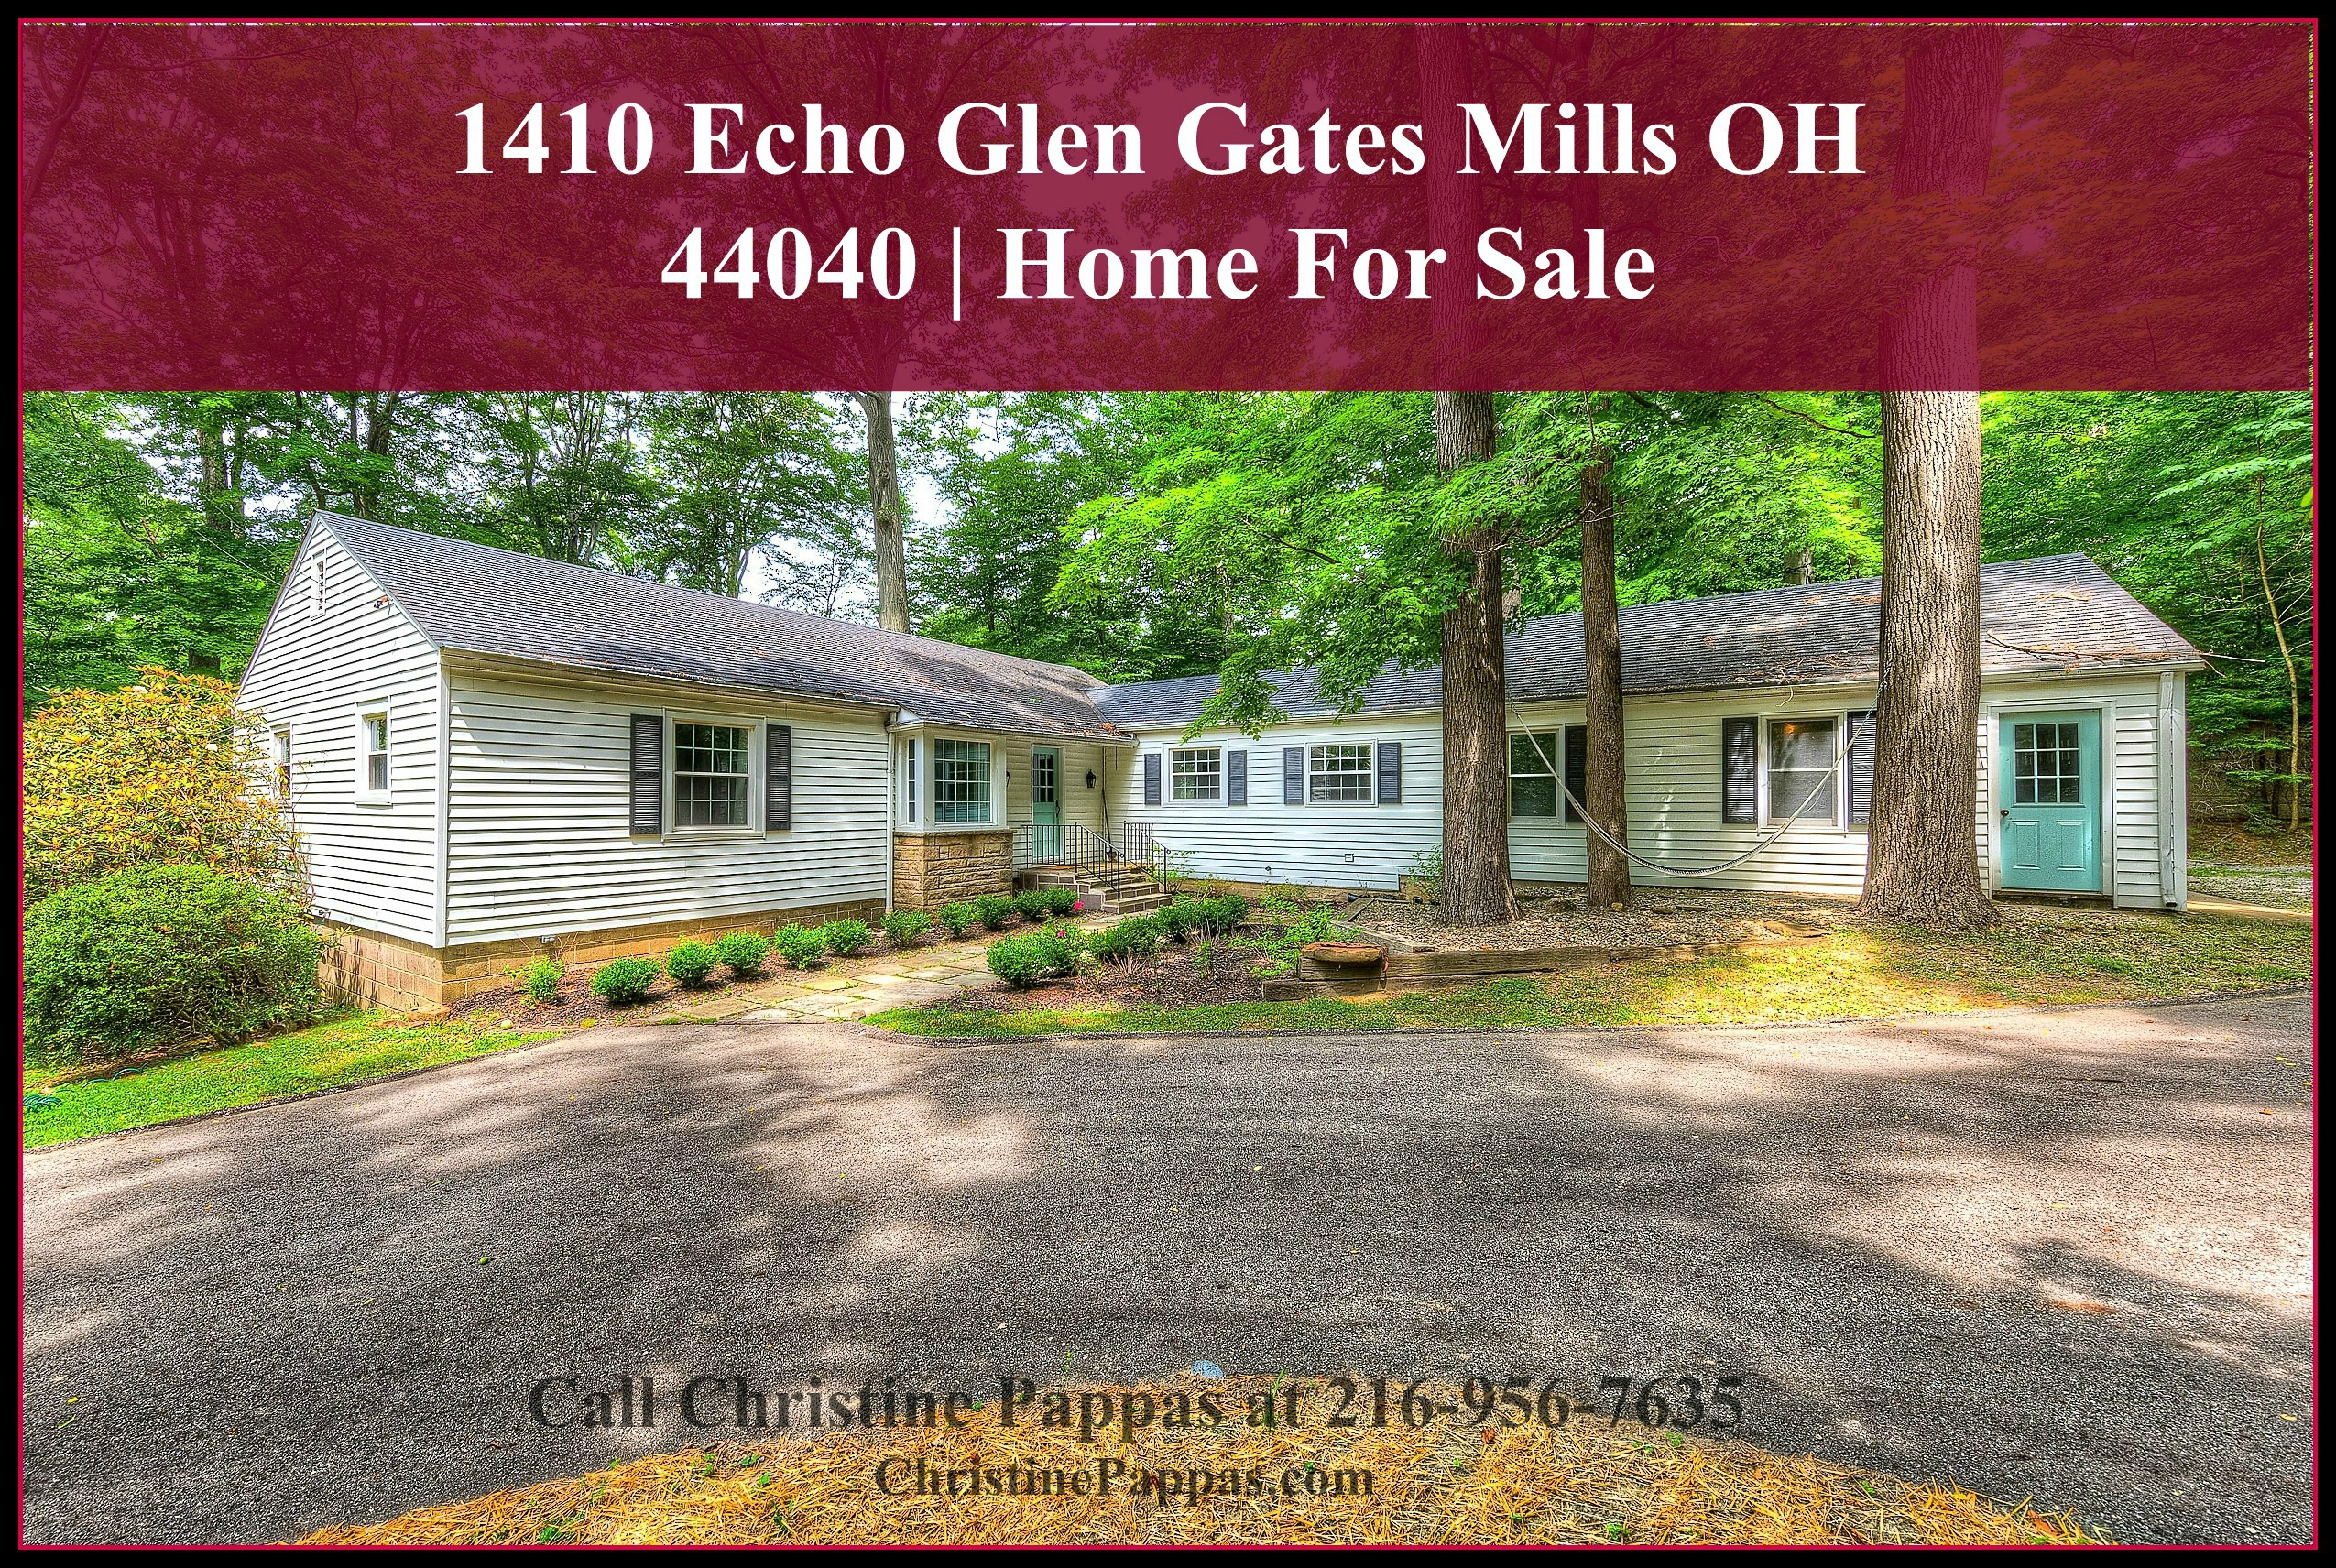 Situated in a superb location and an extra large lot, this 2 bedroom home for sale in Gates Mills OH is truly a prized catch.